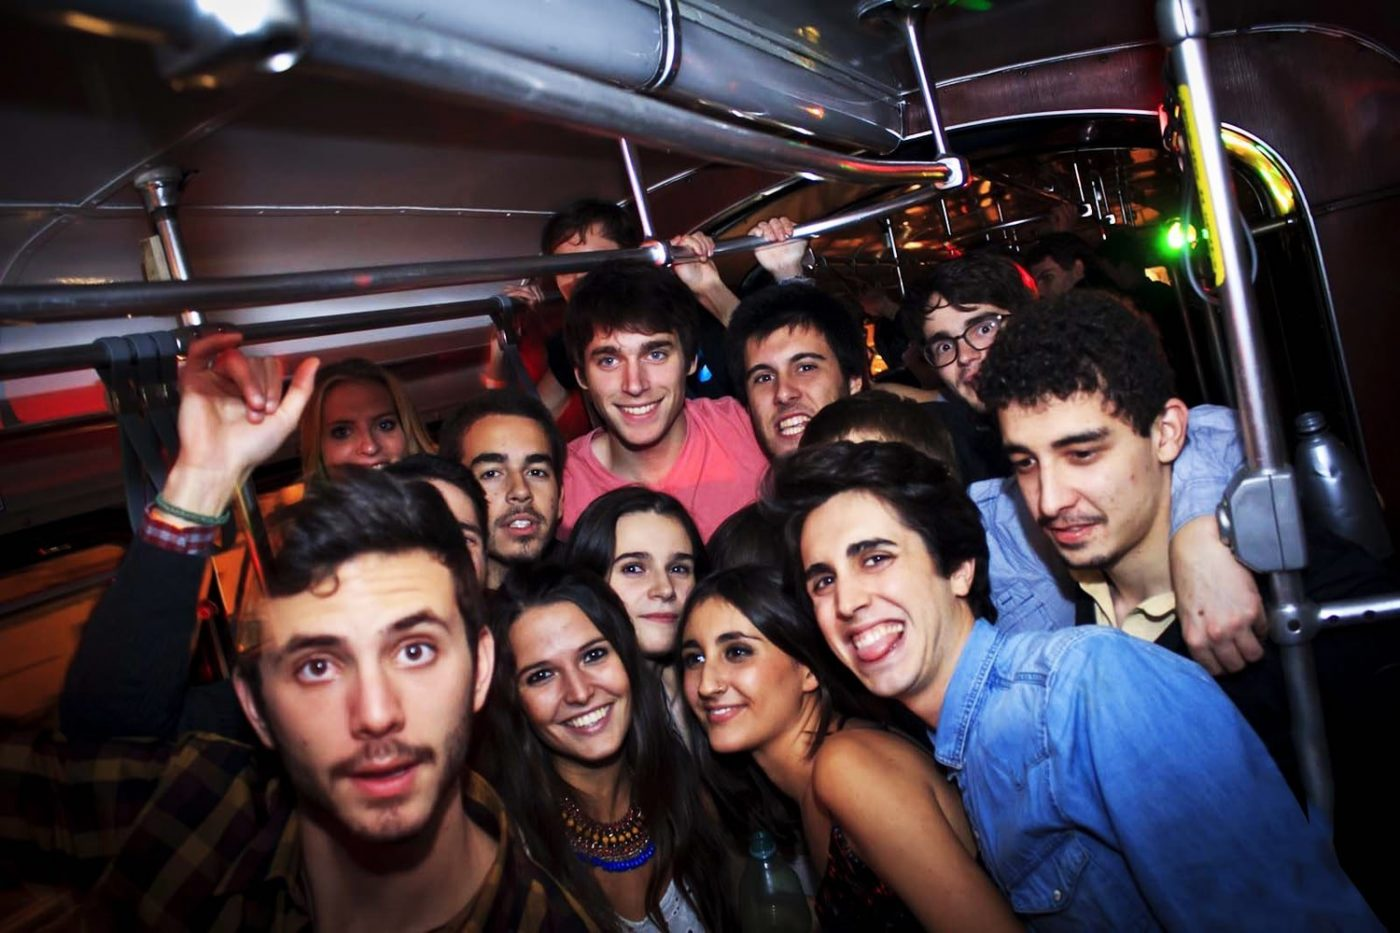 Book a private tram party for you and your friends